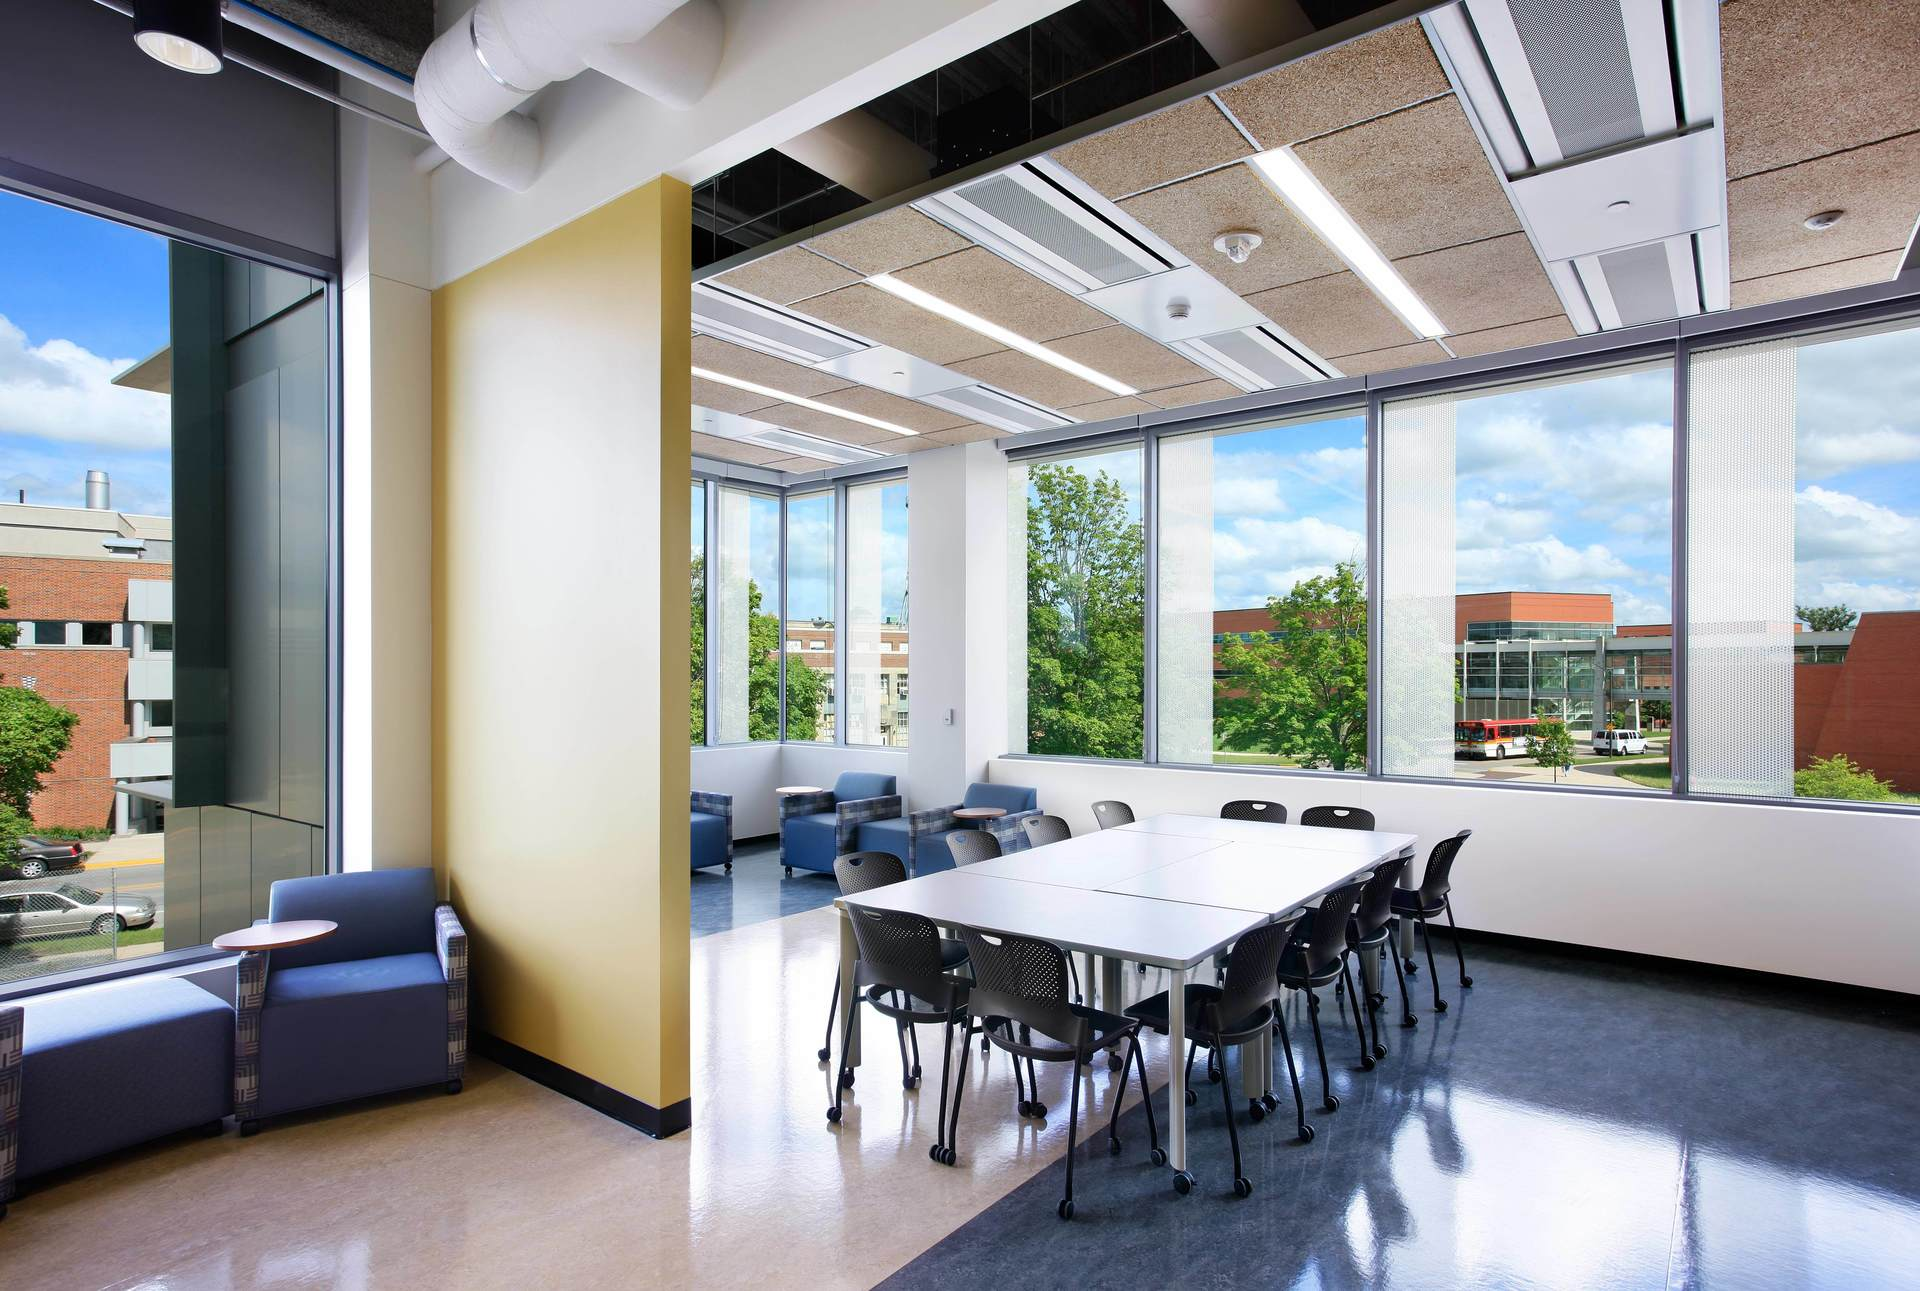 Expansive windows allows natural light to fill the space at the ISU Biorenewables Research Laboratory in Ames, Iowa, by Stahl.